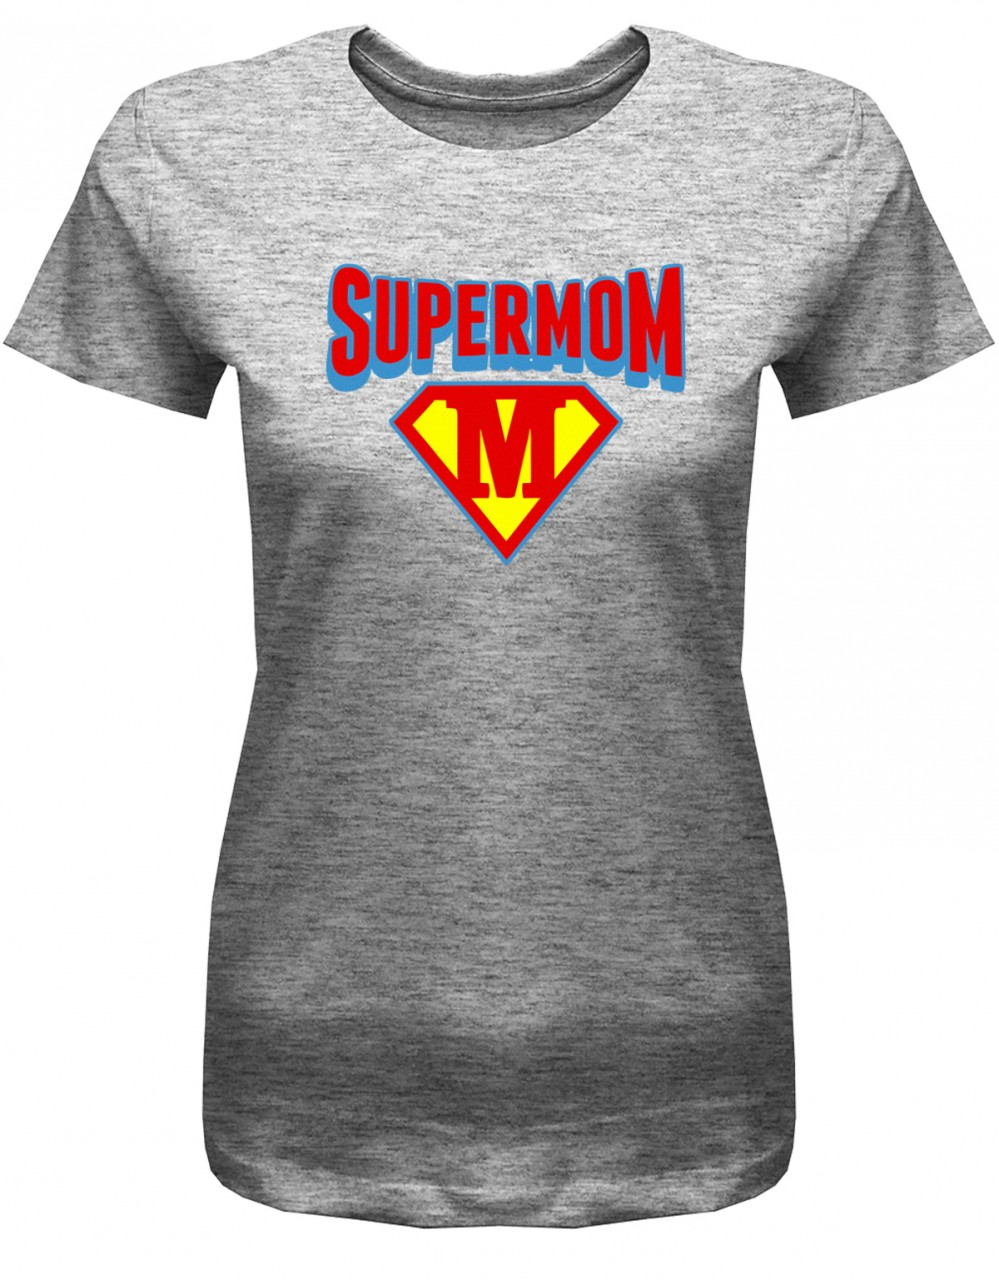 Super Mom - Mama - Mutter - Damen T-Shirt